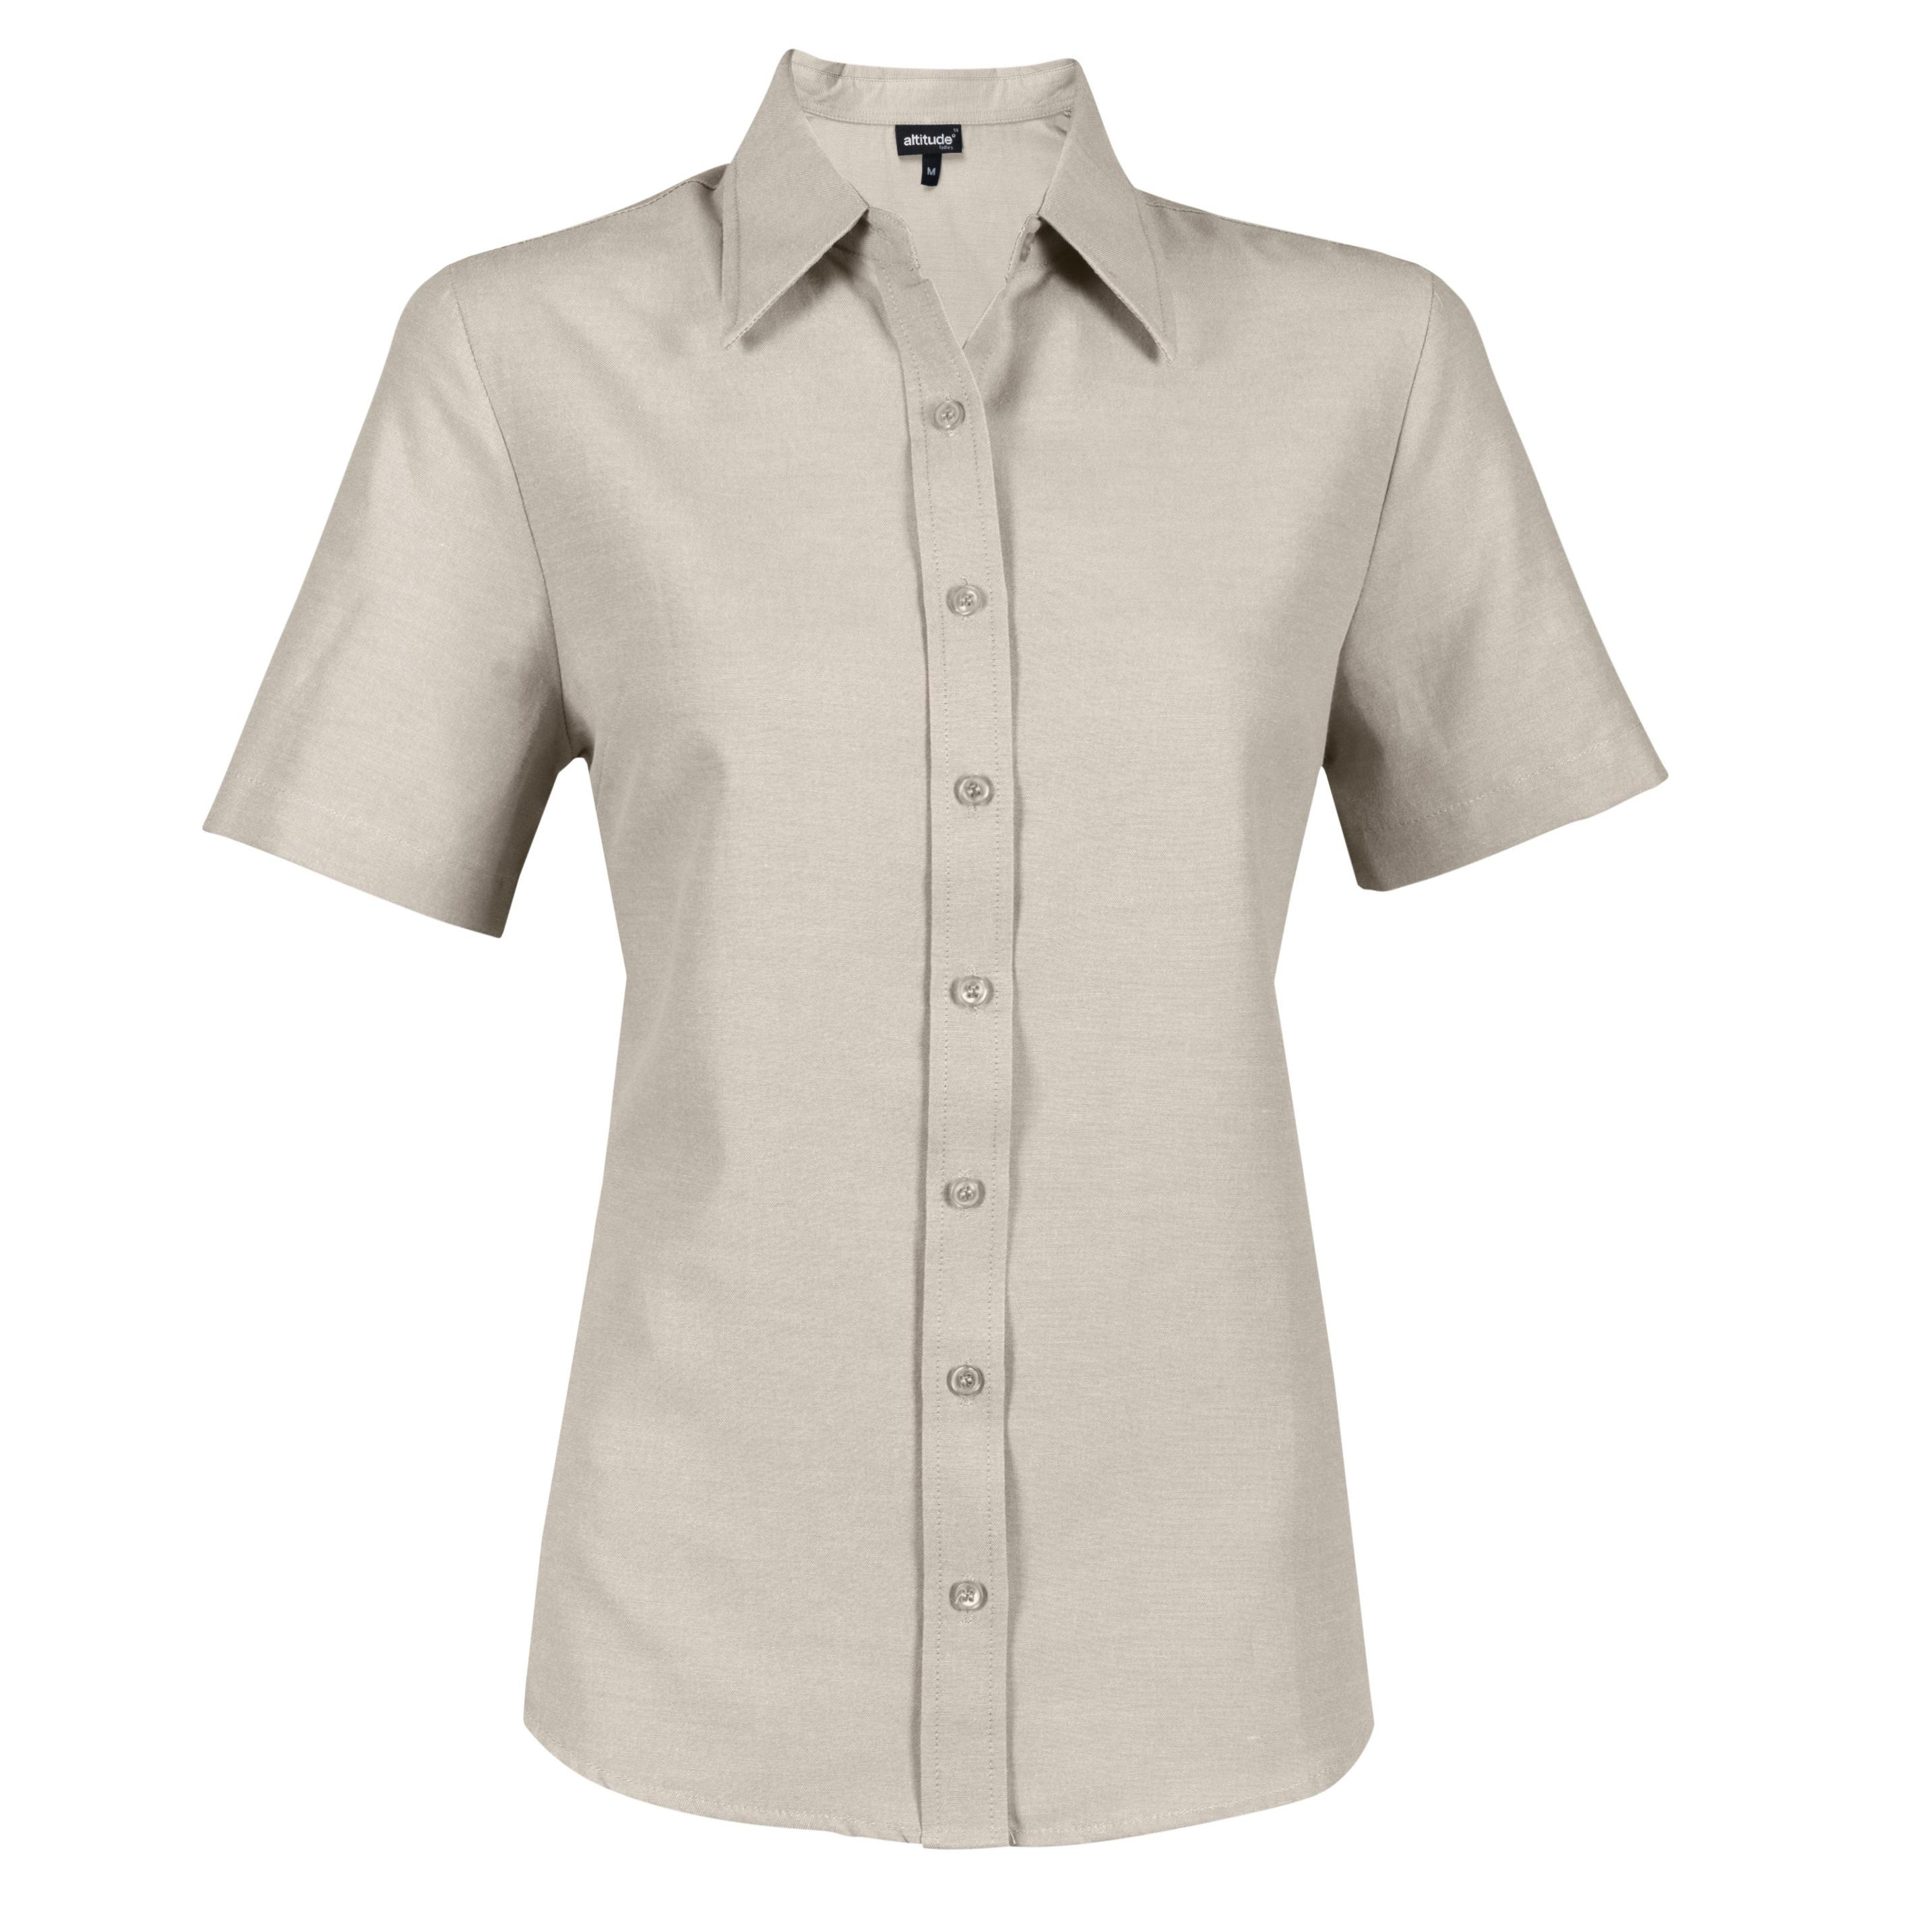 Ladies Short Sleeve Oxford Shirt - Stone Only